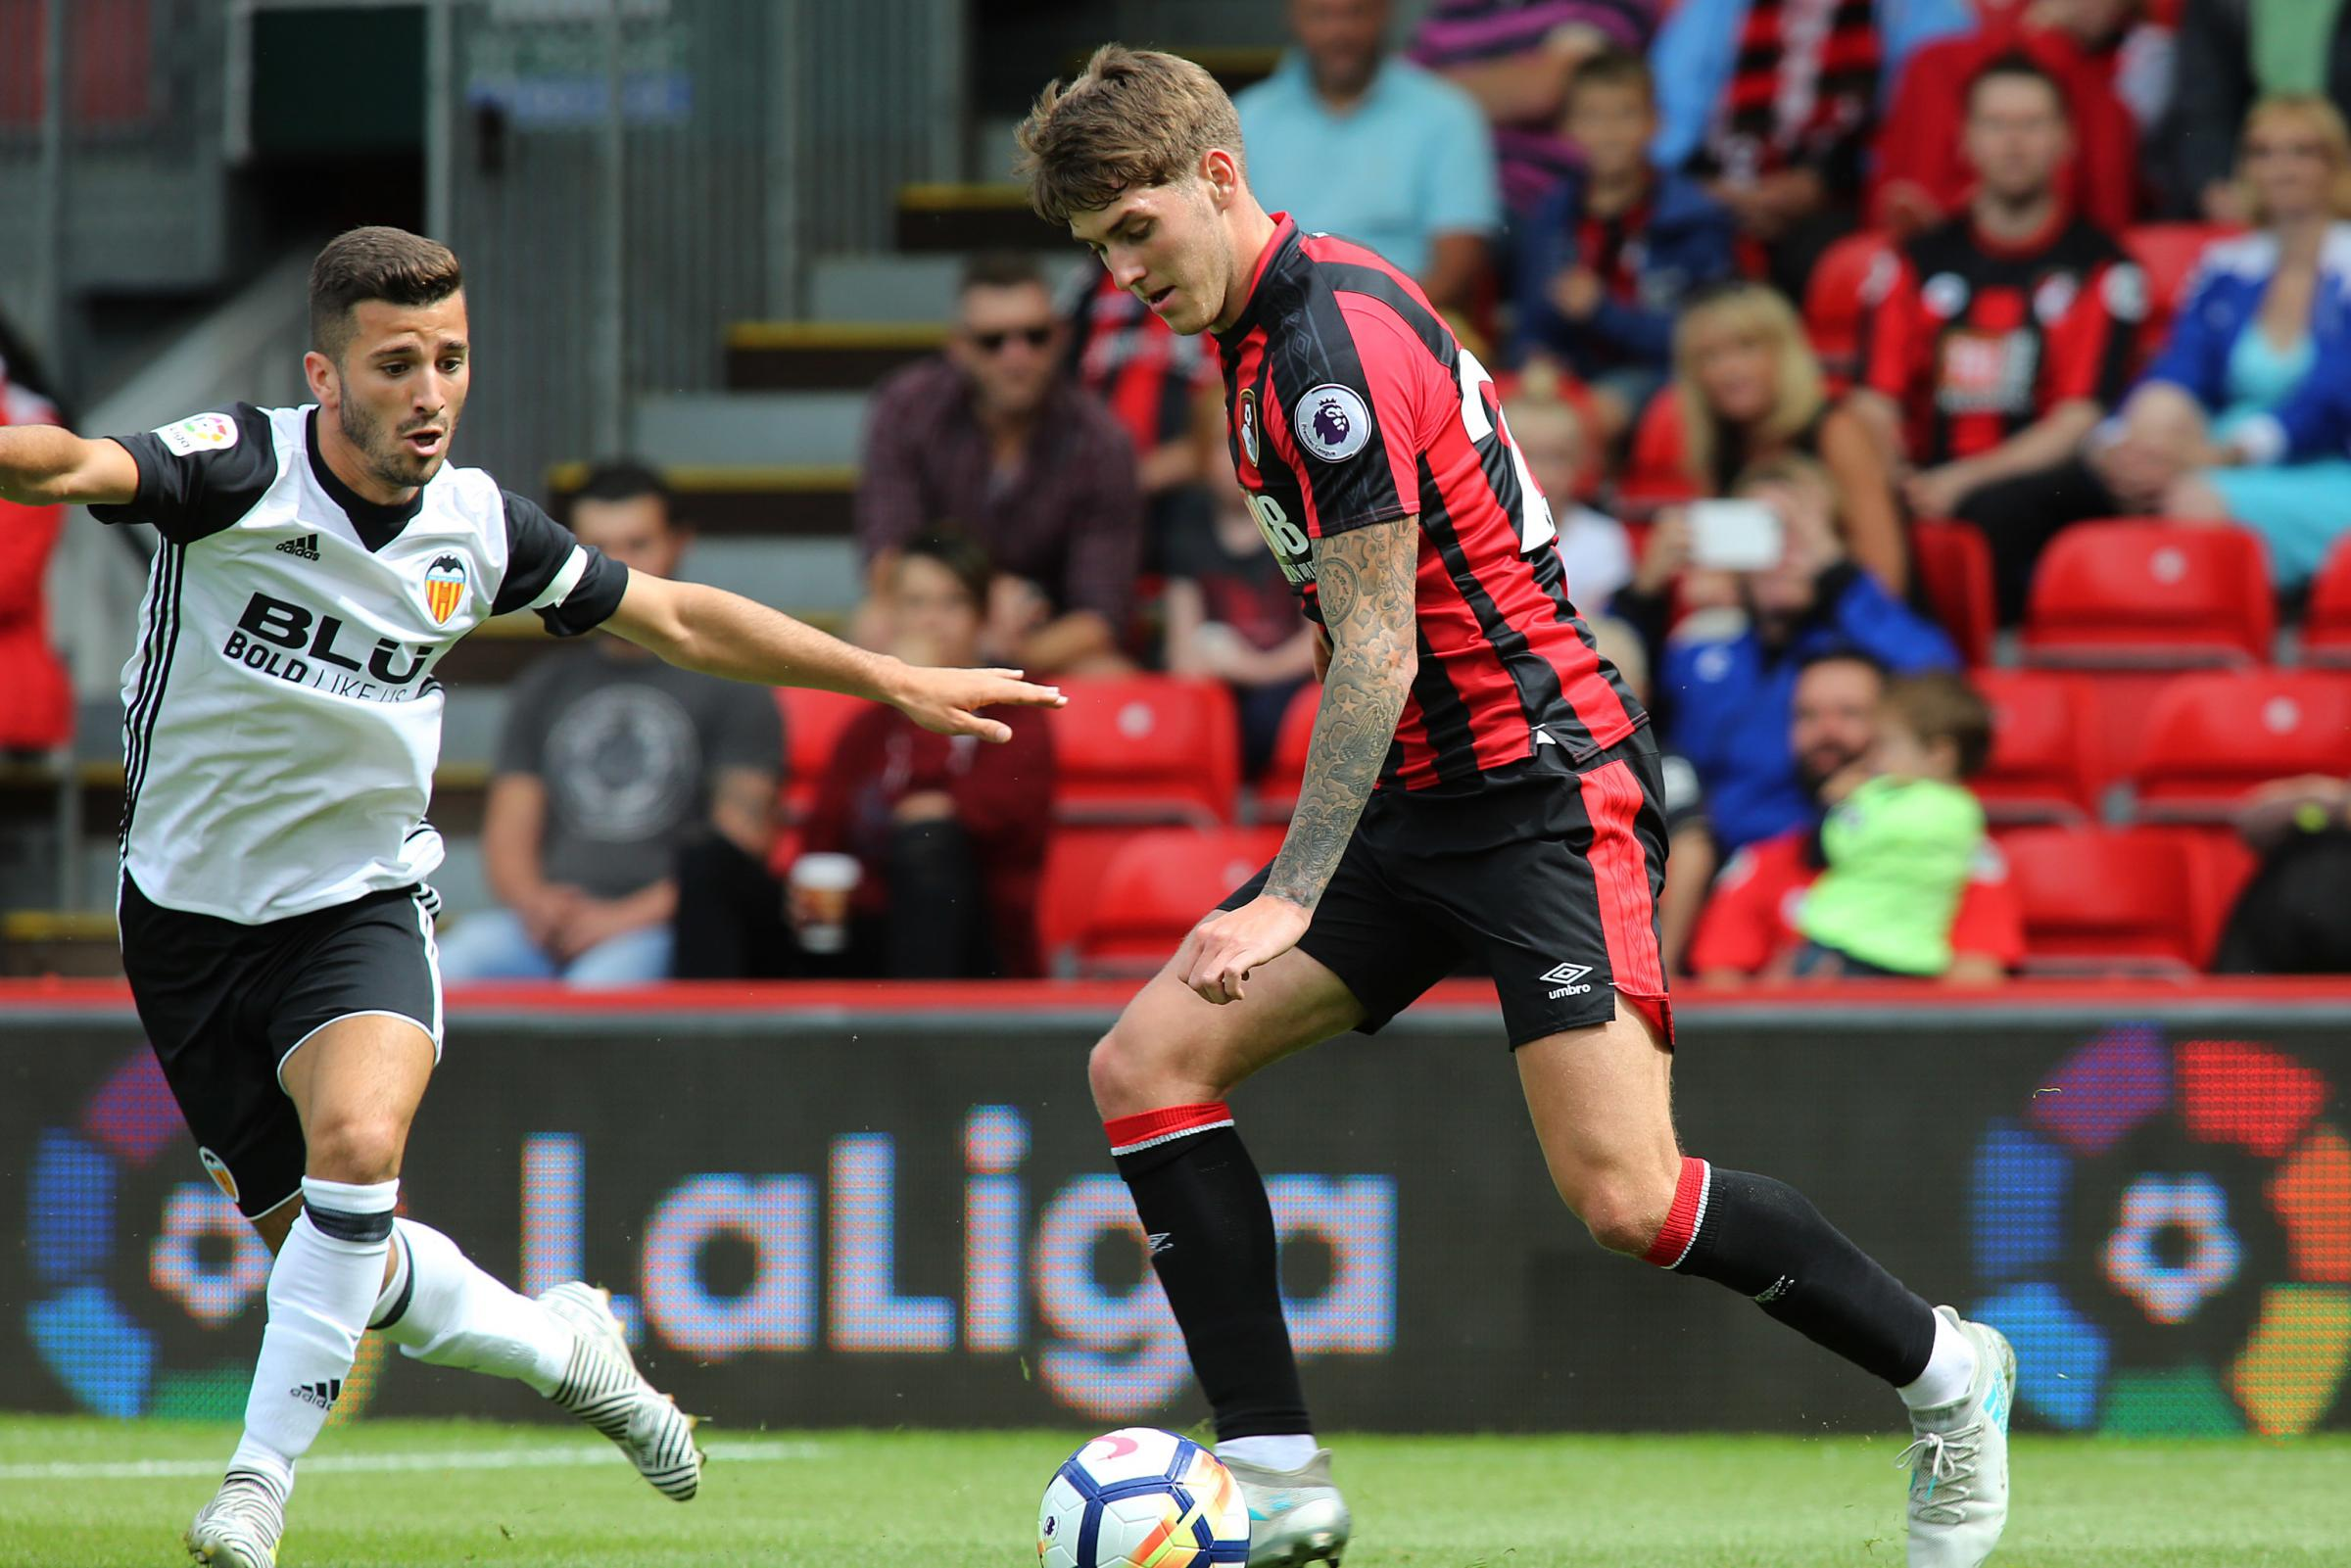 Former AFC Bournemouth man Connor Mahoney has had 'a good football upbringing' says Millwall boss Neil Harris